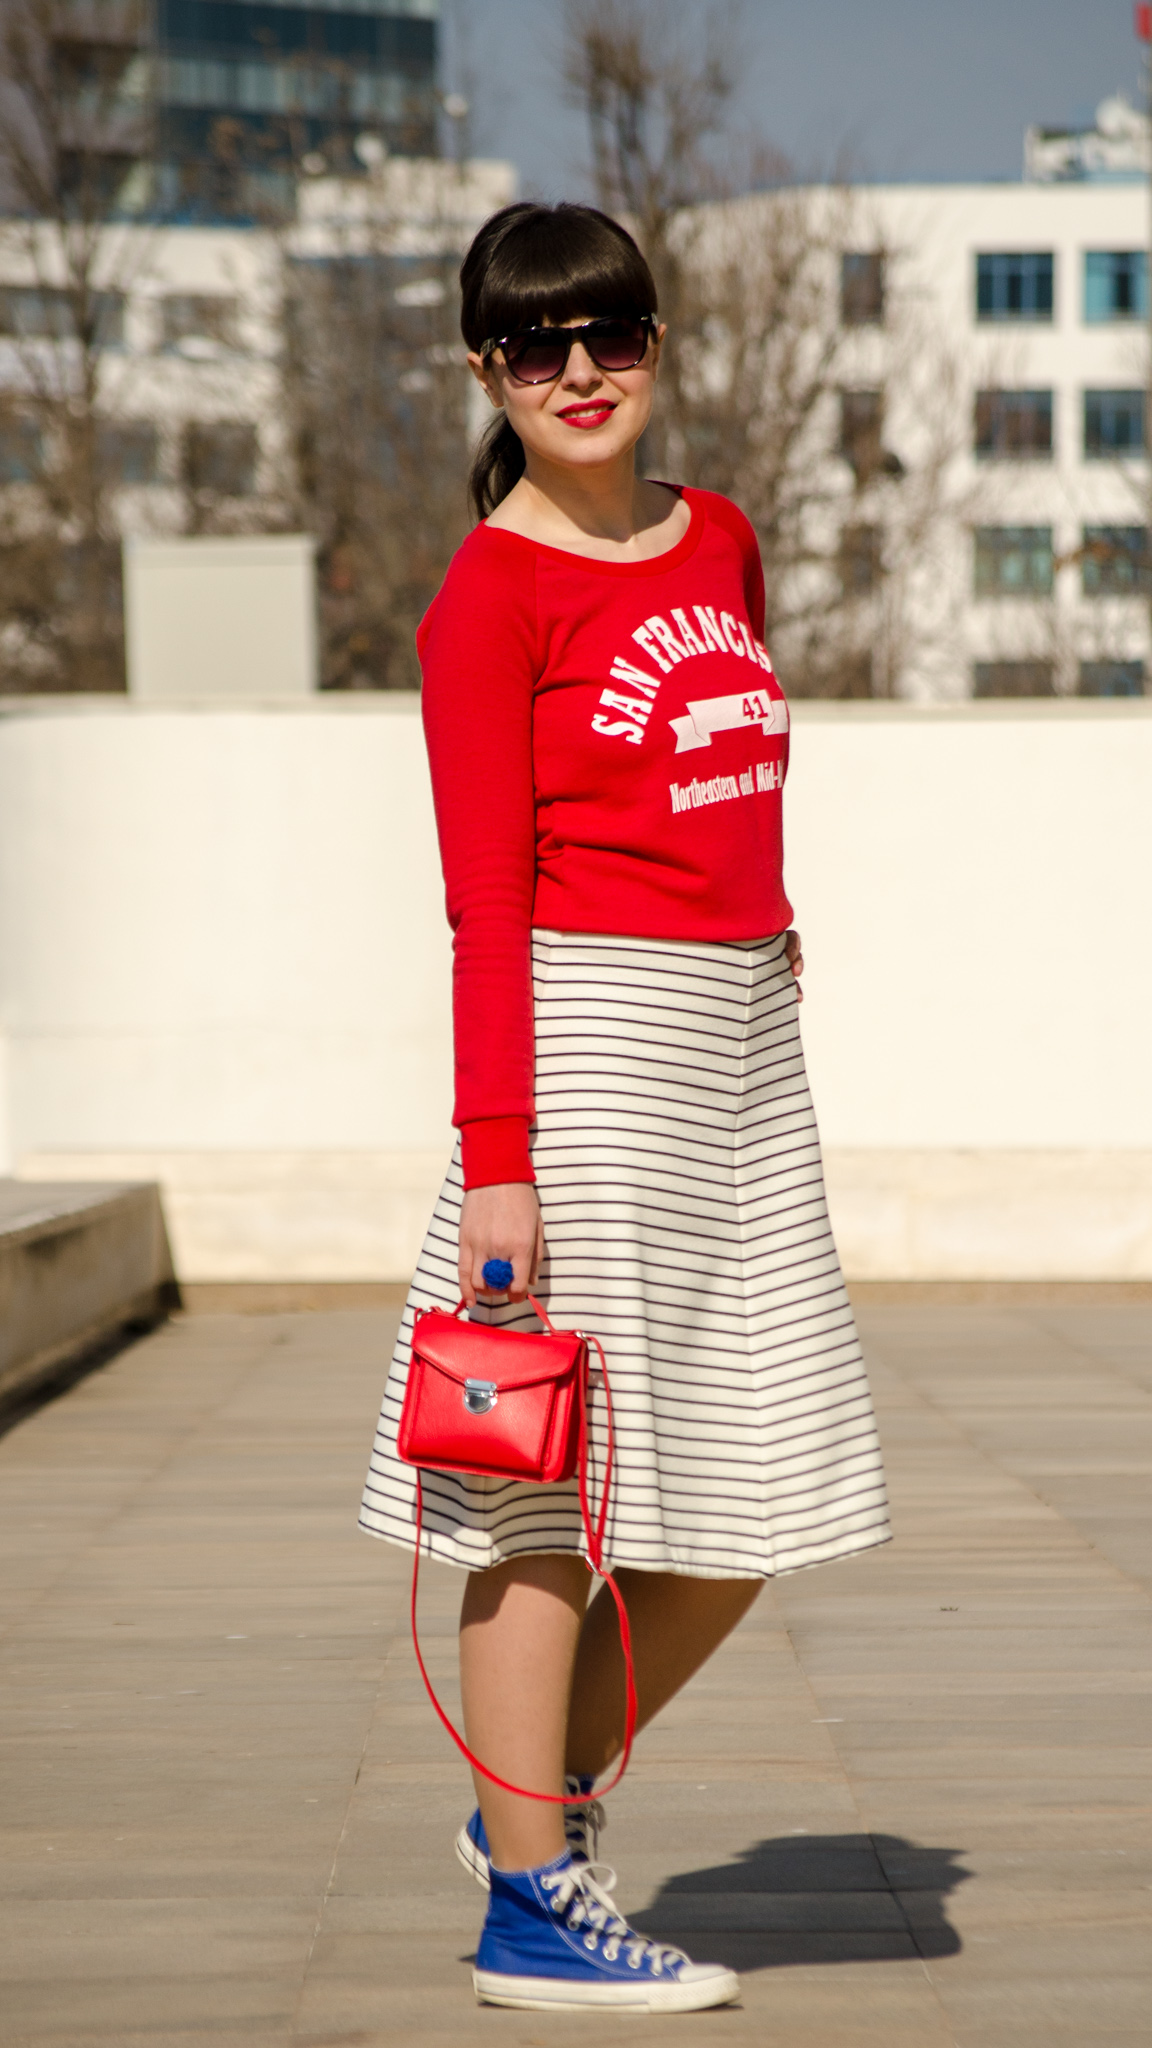 sport red top koton zara striped skirt stripes navy look red bag satchel cobalt blue sneakers converse spring outfit